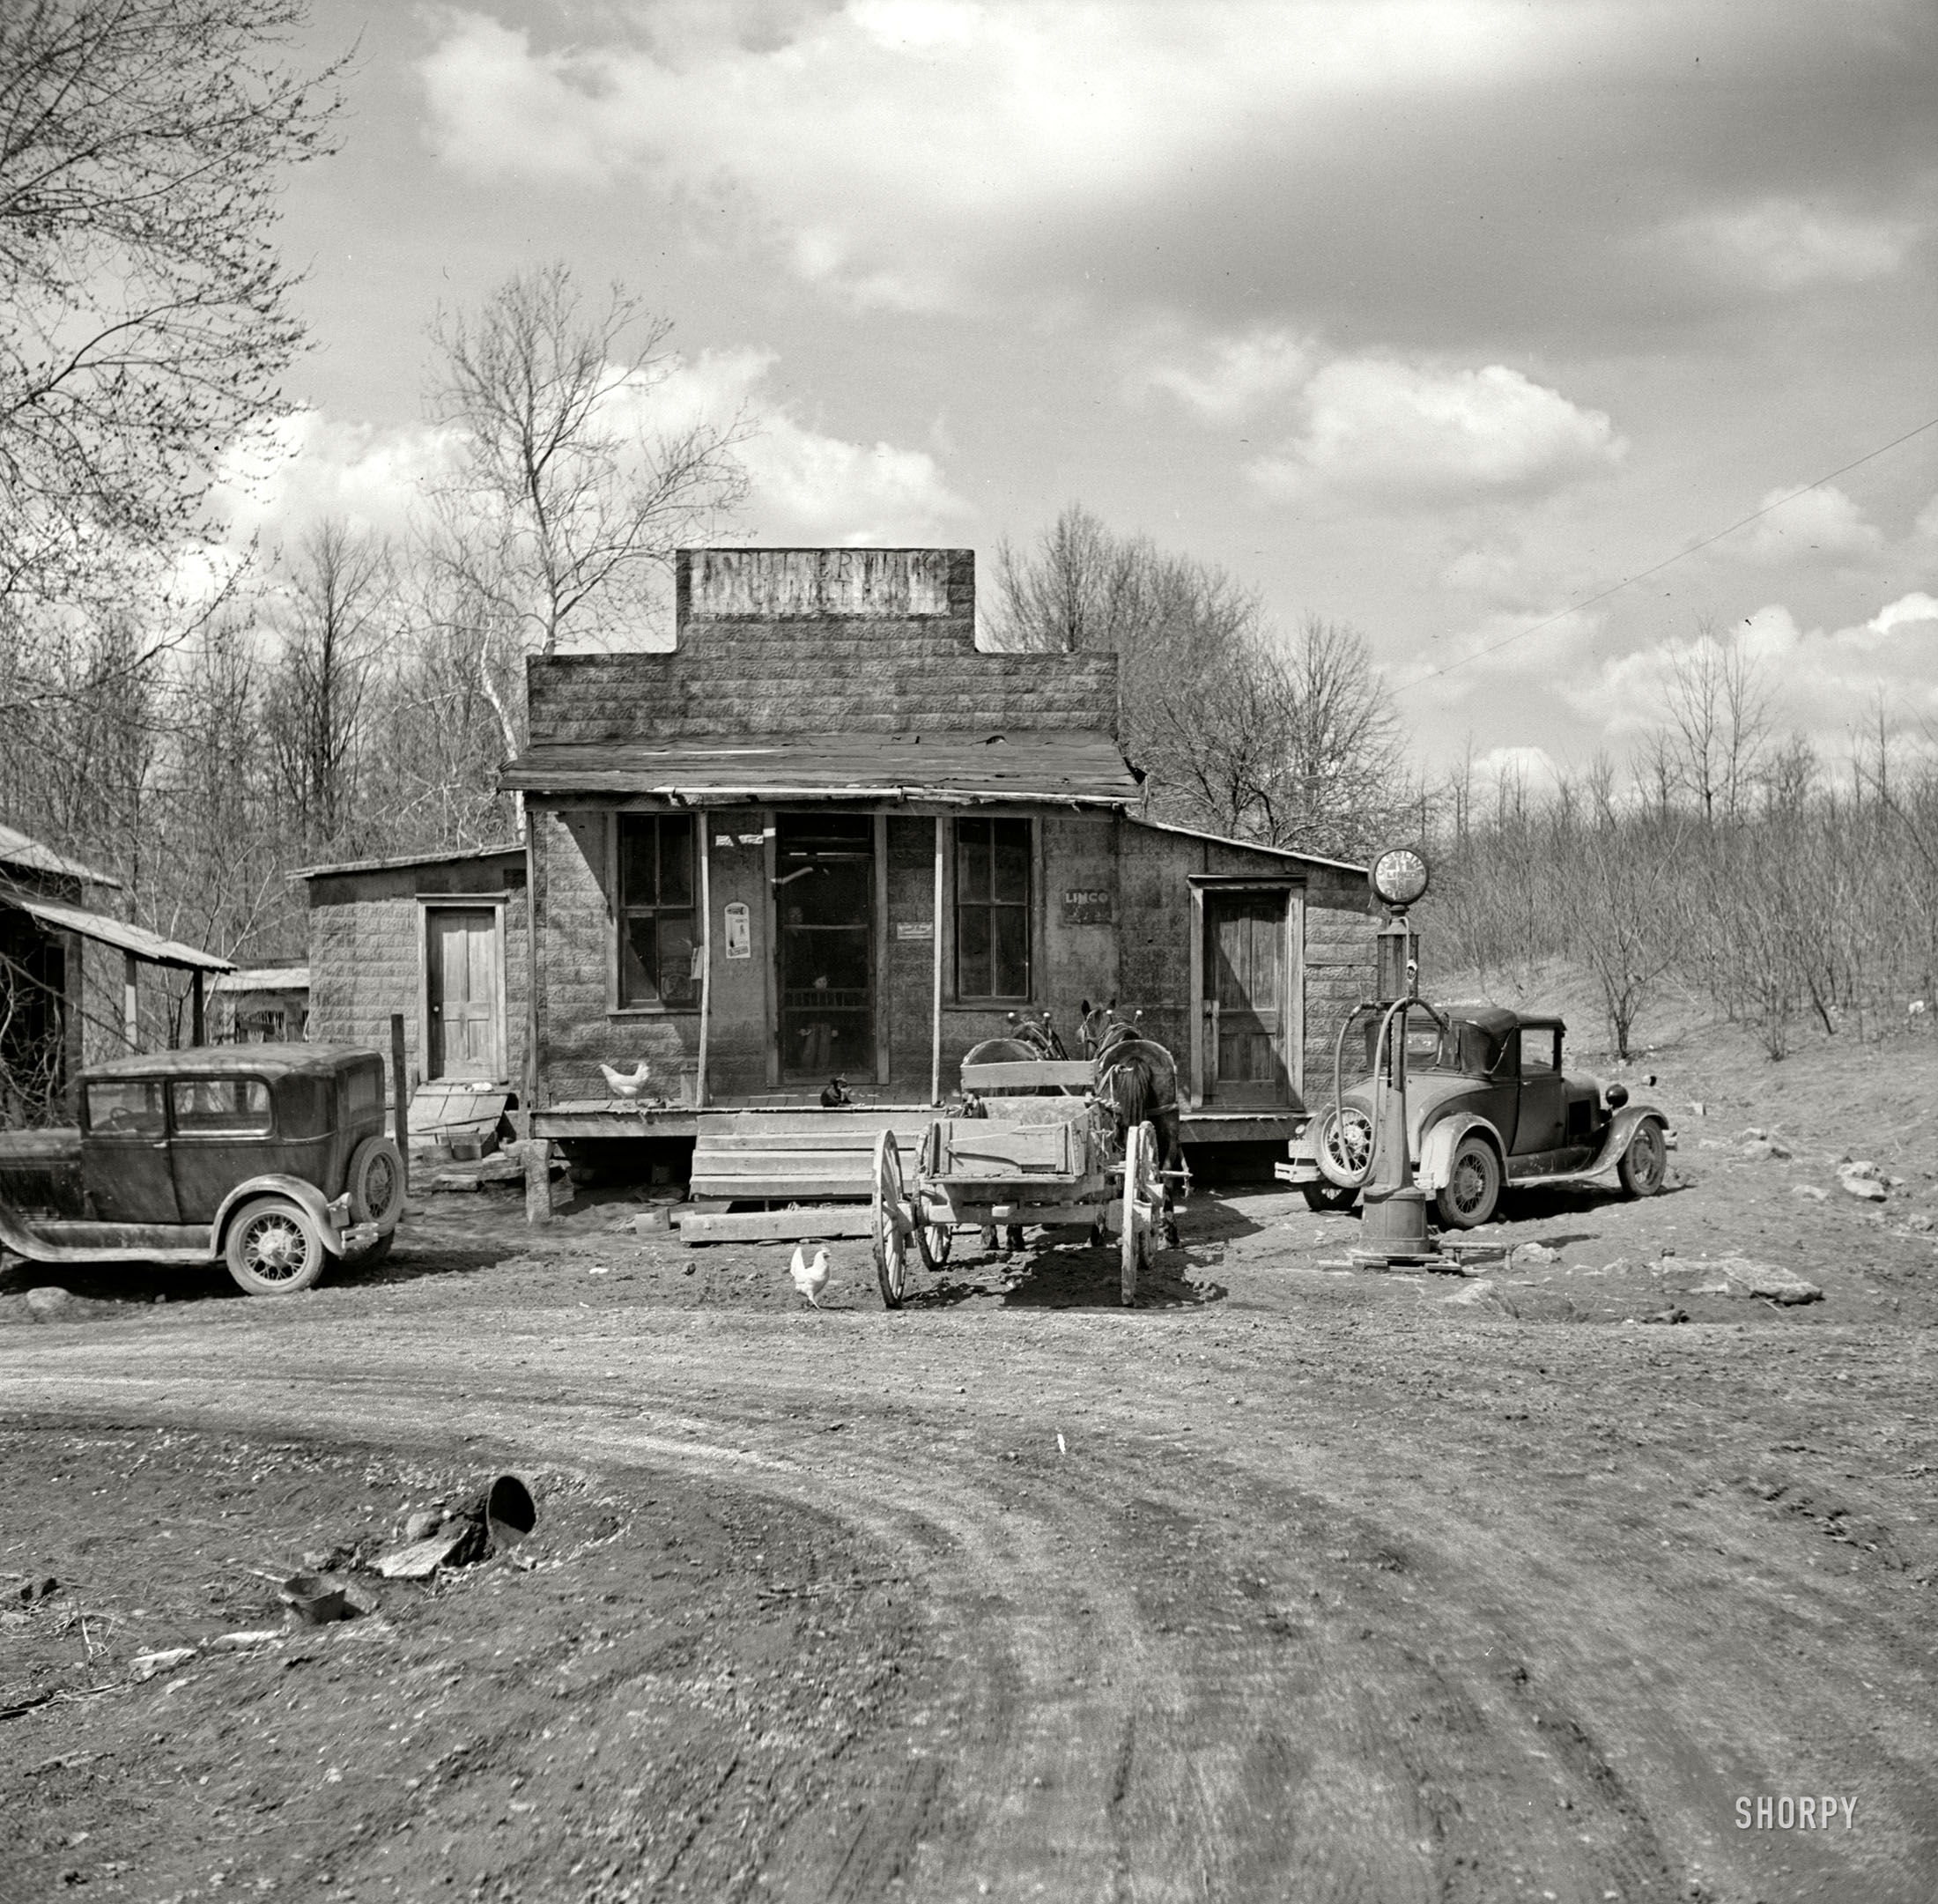 Indiana martin county shoals - Shorpy Historic Picture Archive Buttermilk Junction 1937 High Resolution Photo